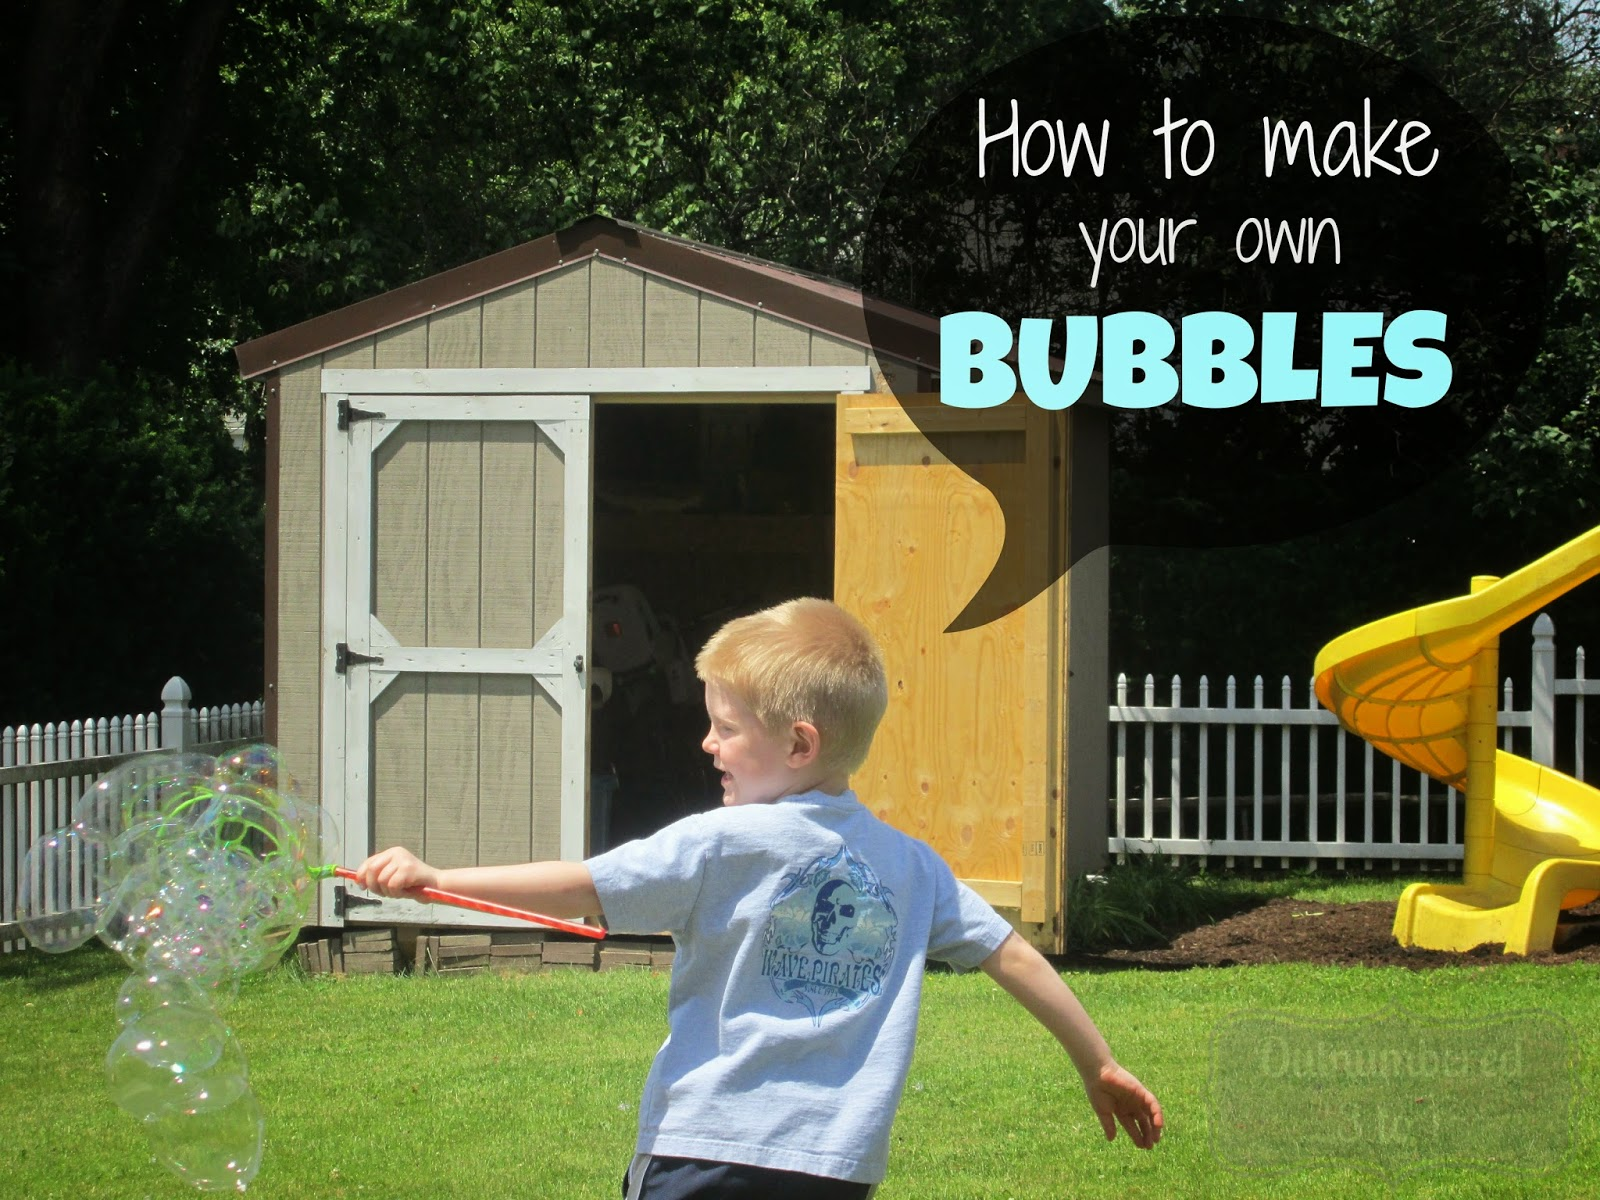 diy how to make your own bubbles outnumbered 3 to 1. Black Bedroom Furniture Sets. Home Design Ideas